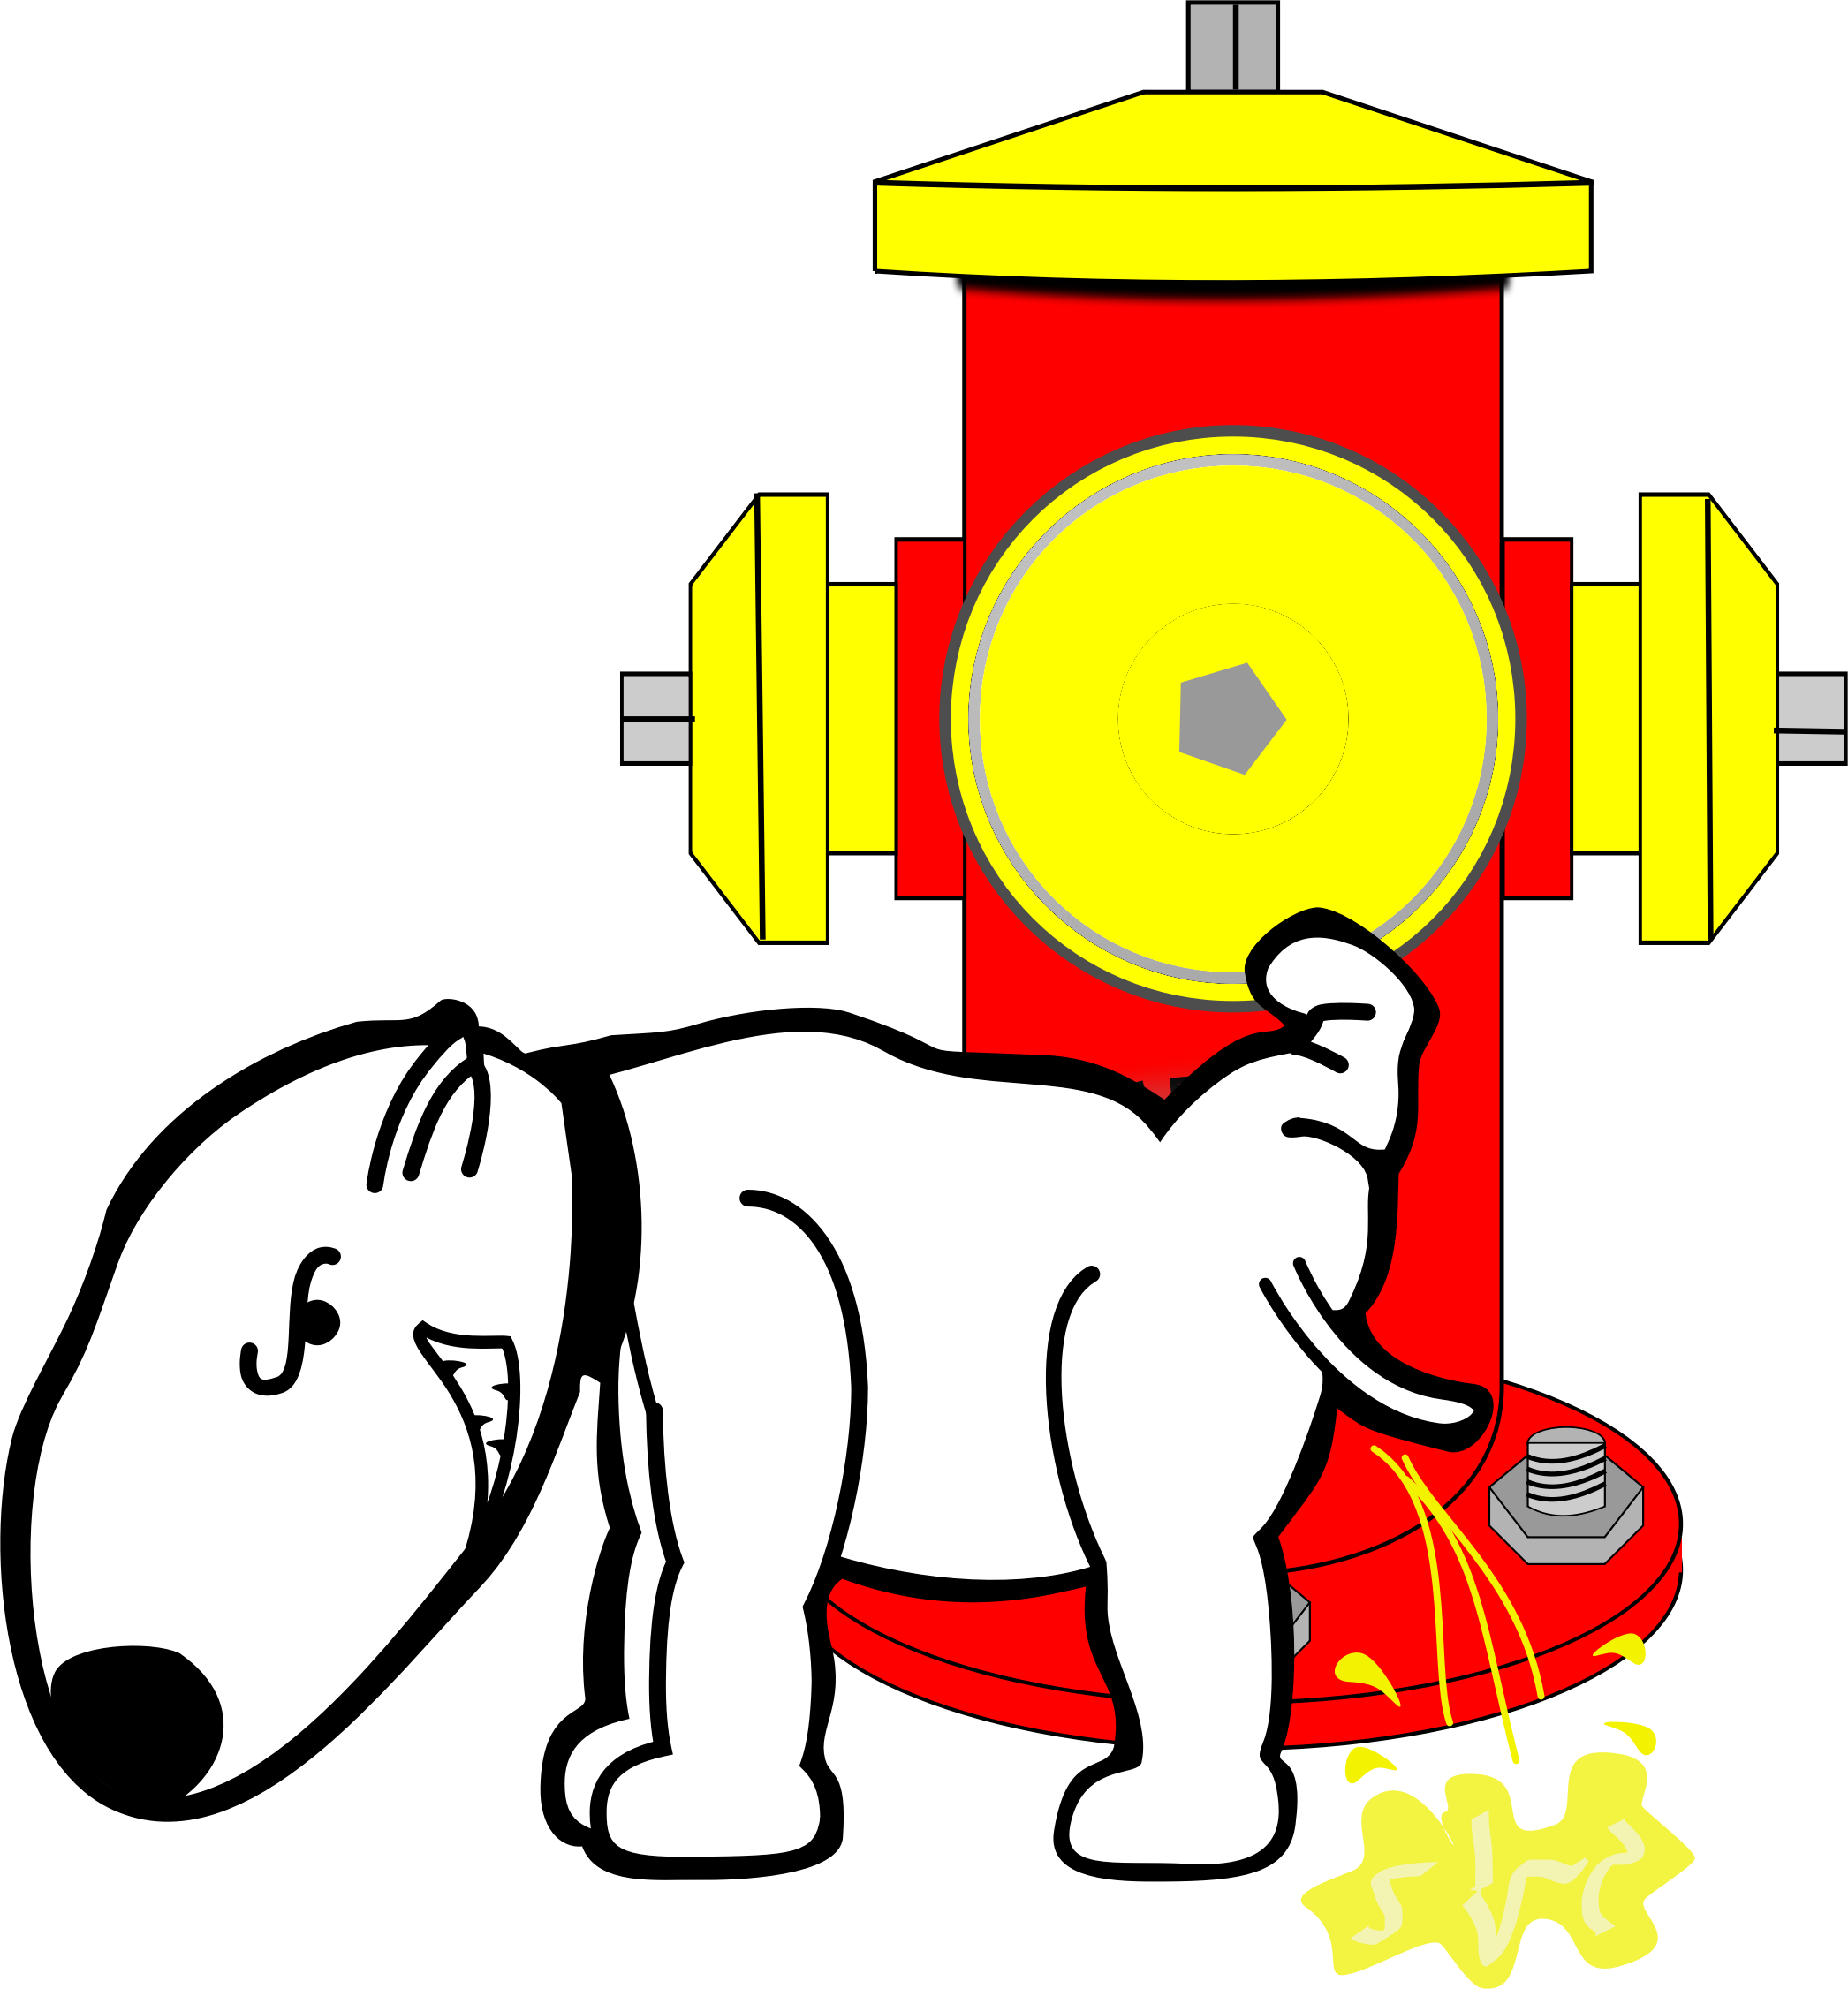 Dog Peeing On Fire Hydrant Vector Clipart Image Free Stock Photo Public Domain Photo Cc0 Images